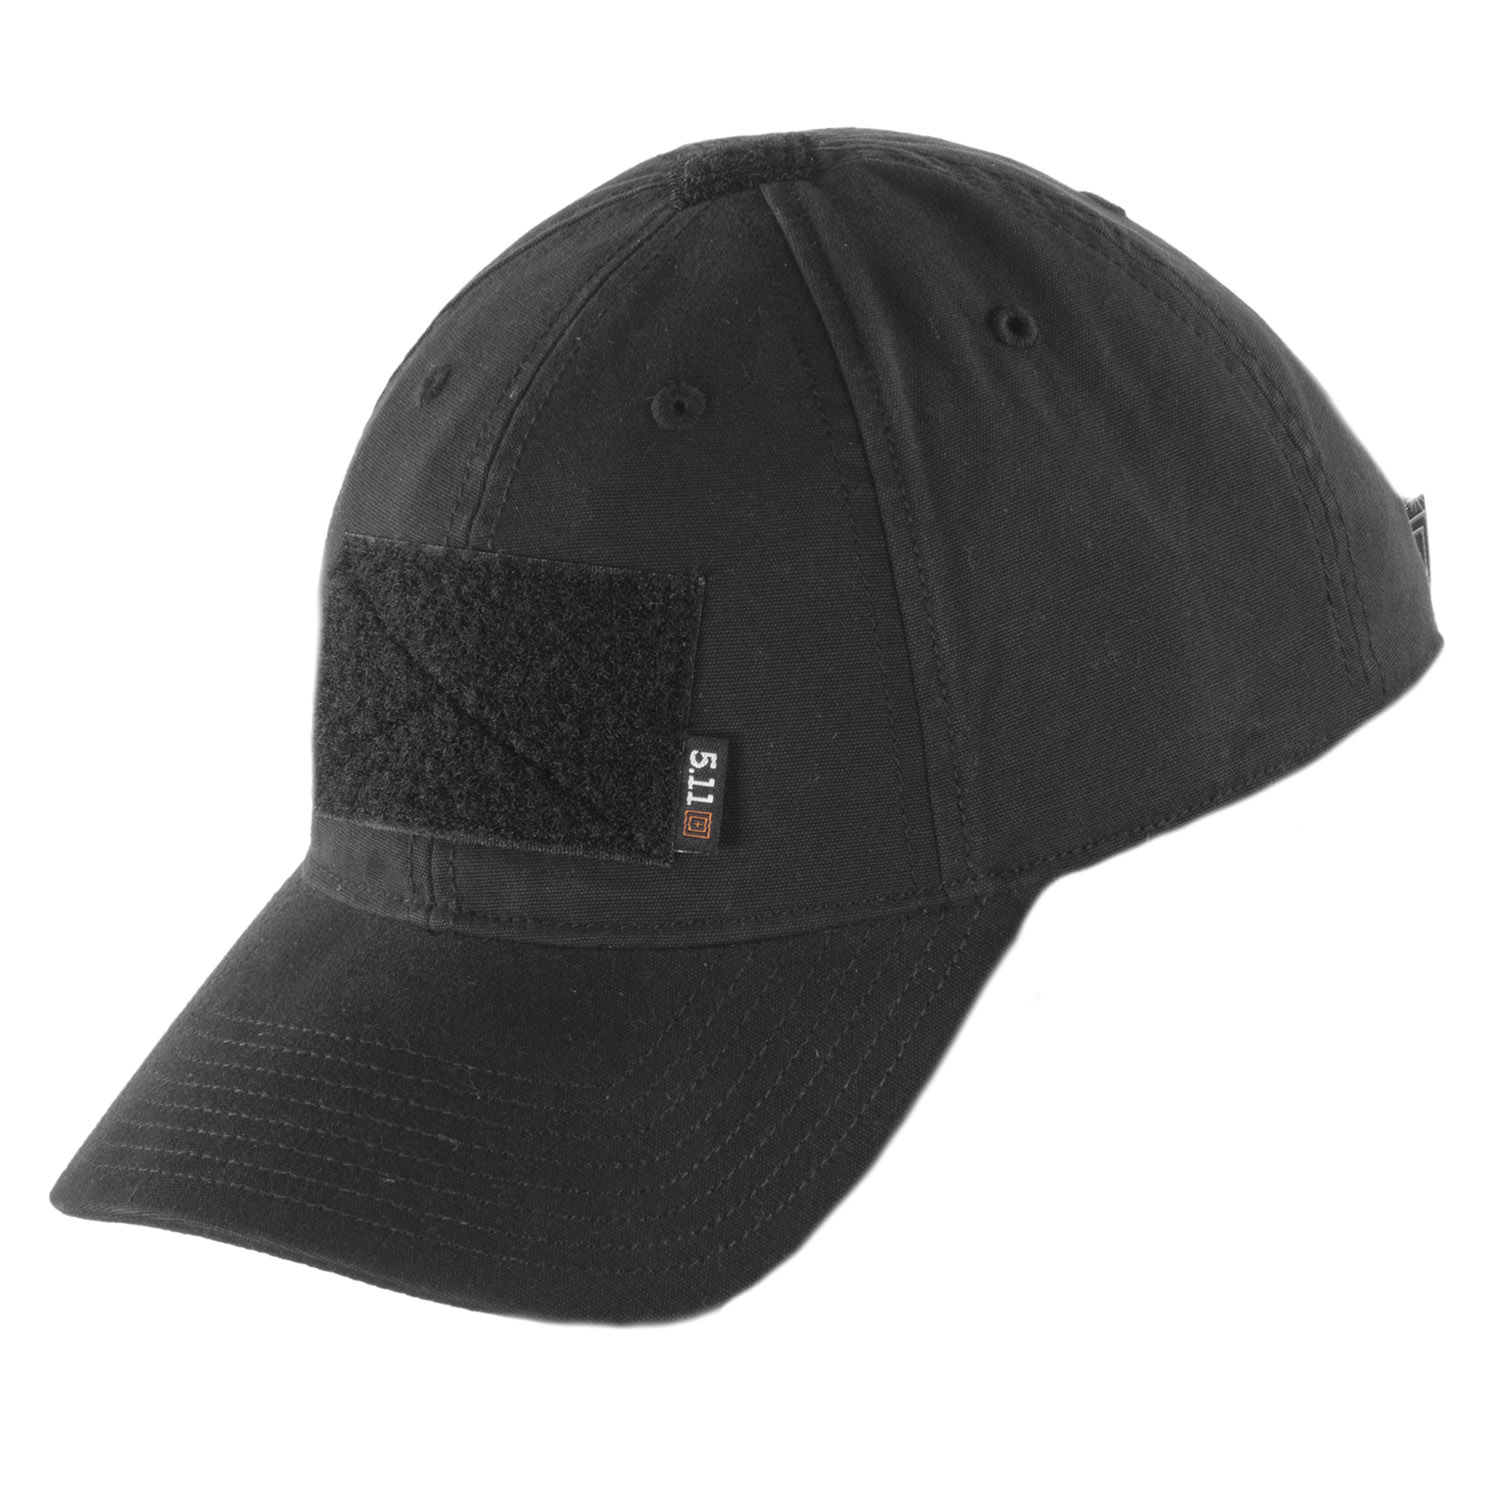 5 11 Tactical Flag Bearer Cap